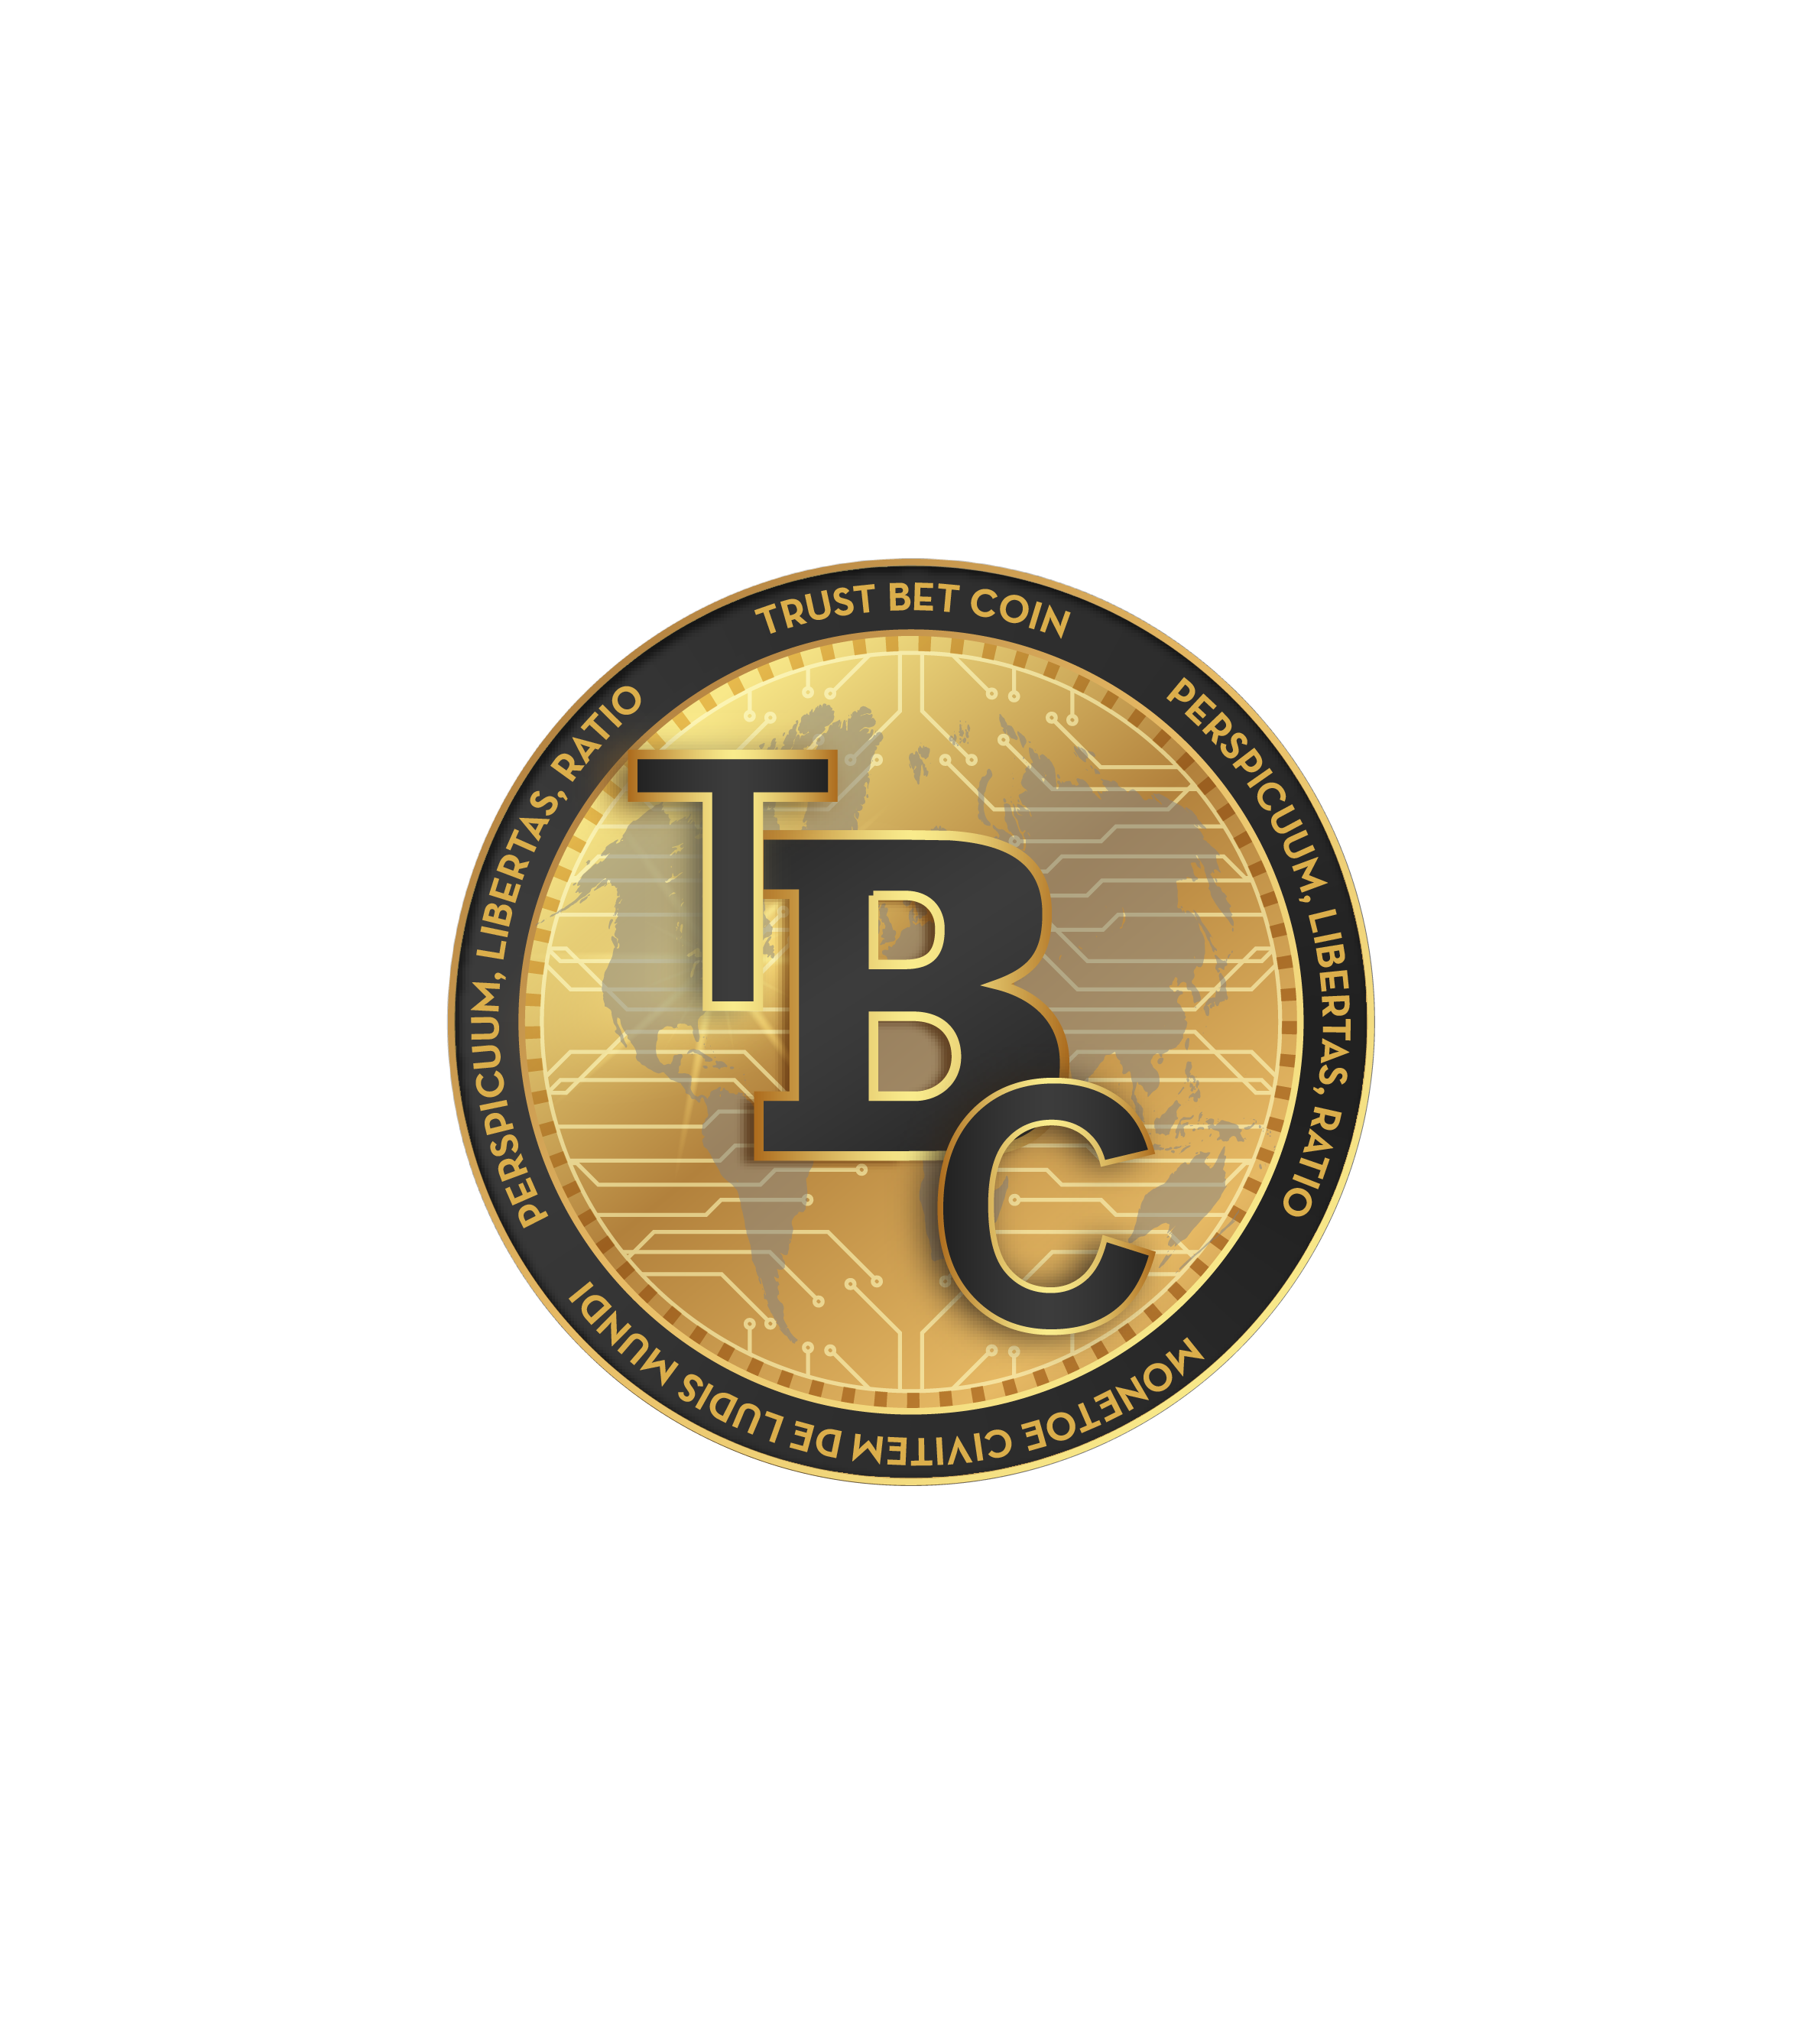 Trust Bet ico review & rating